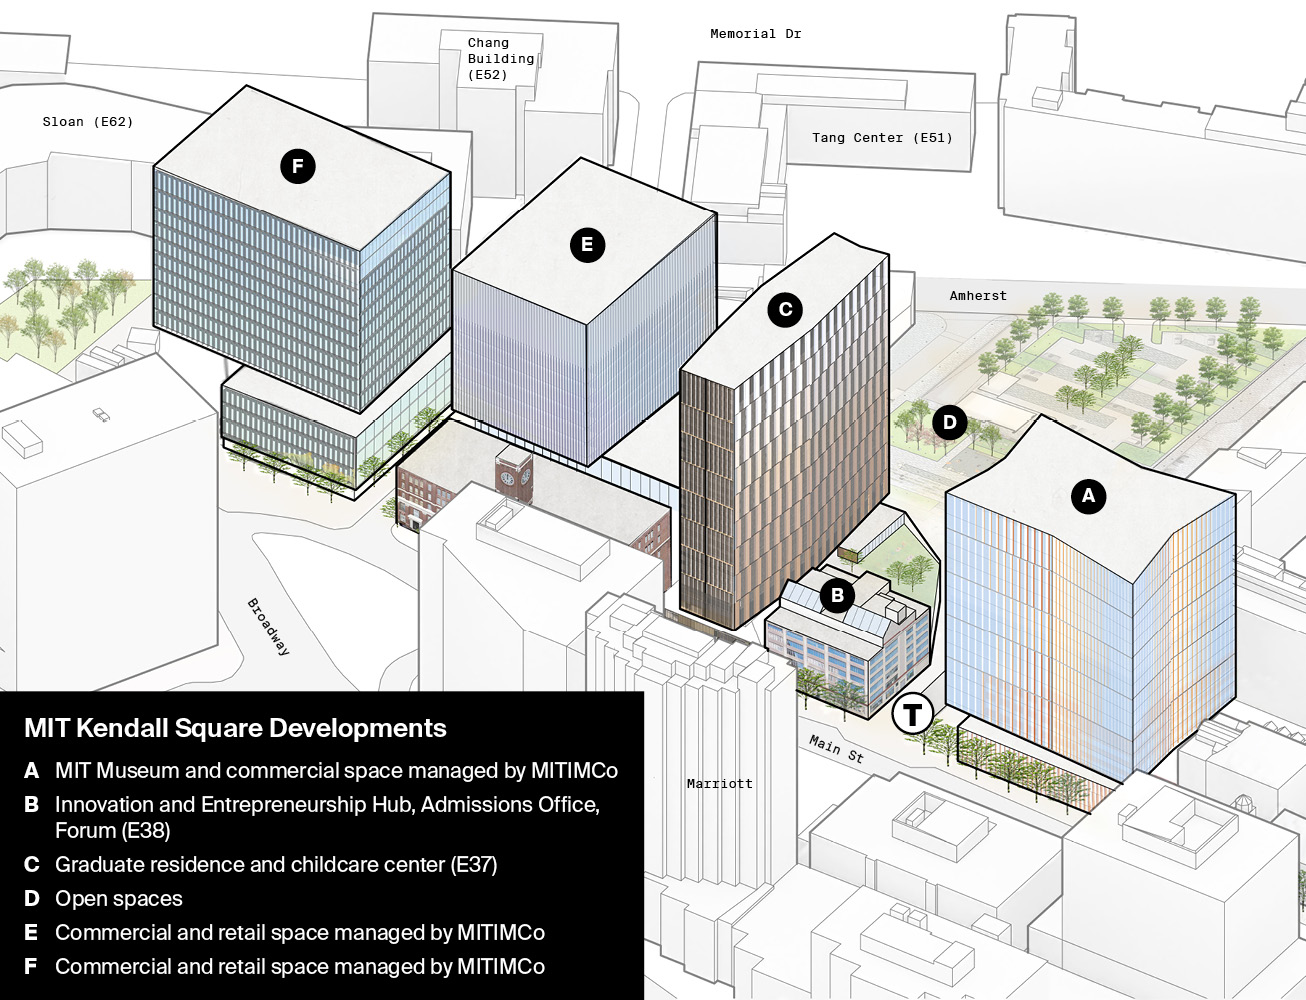 Map of new buildings in Kendall Square